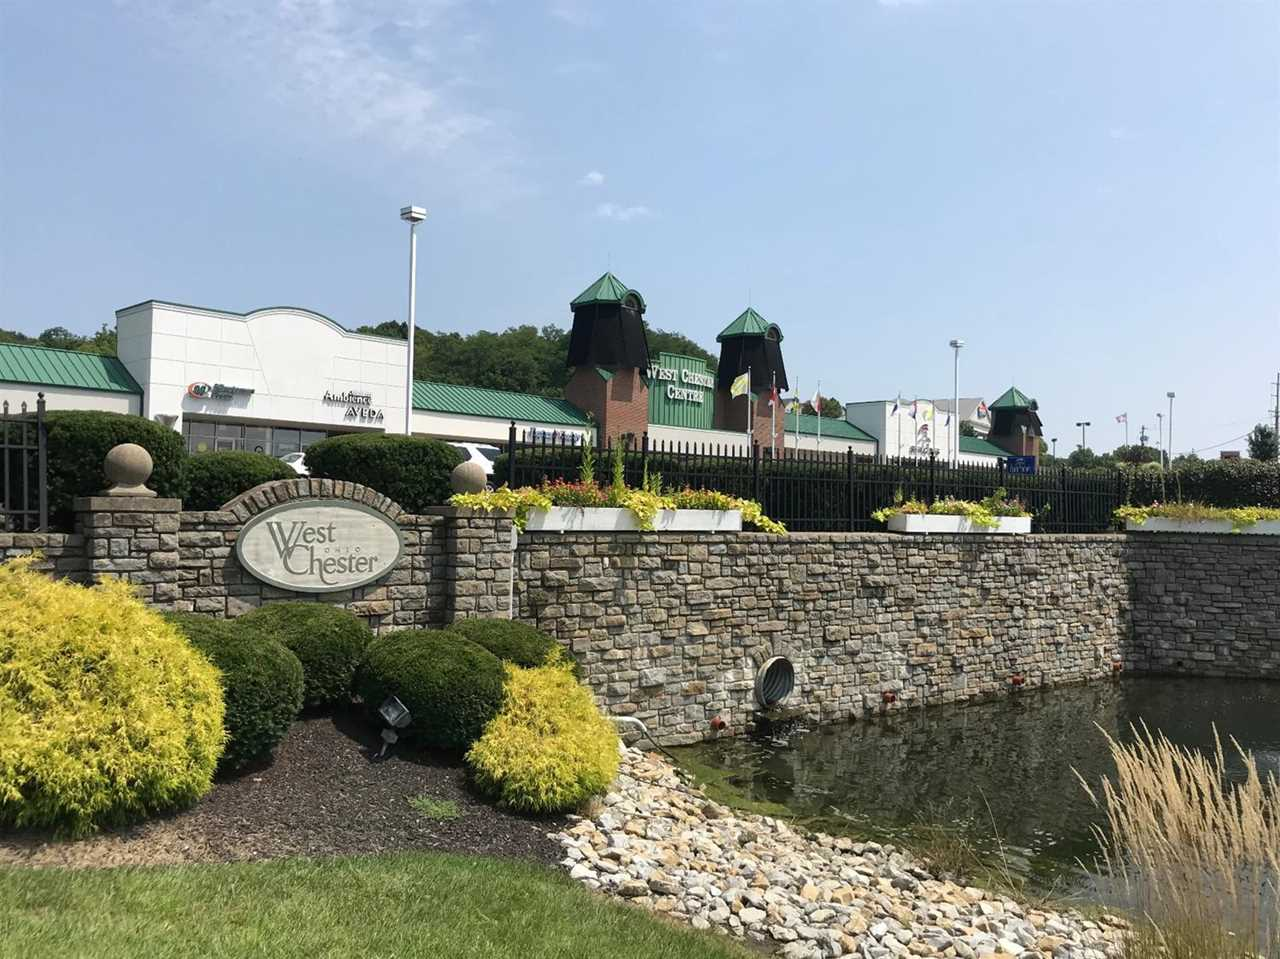 Commercial property for sale in west chester ohio